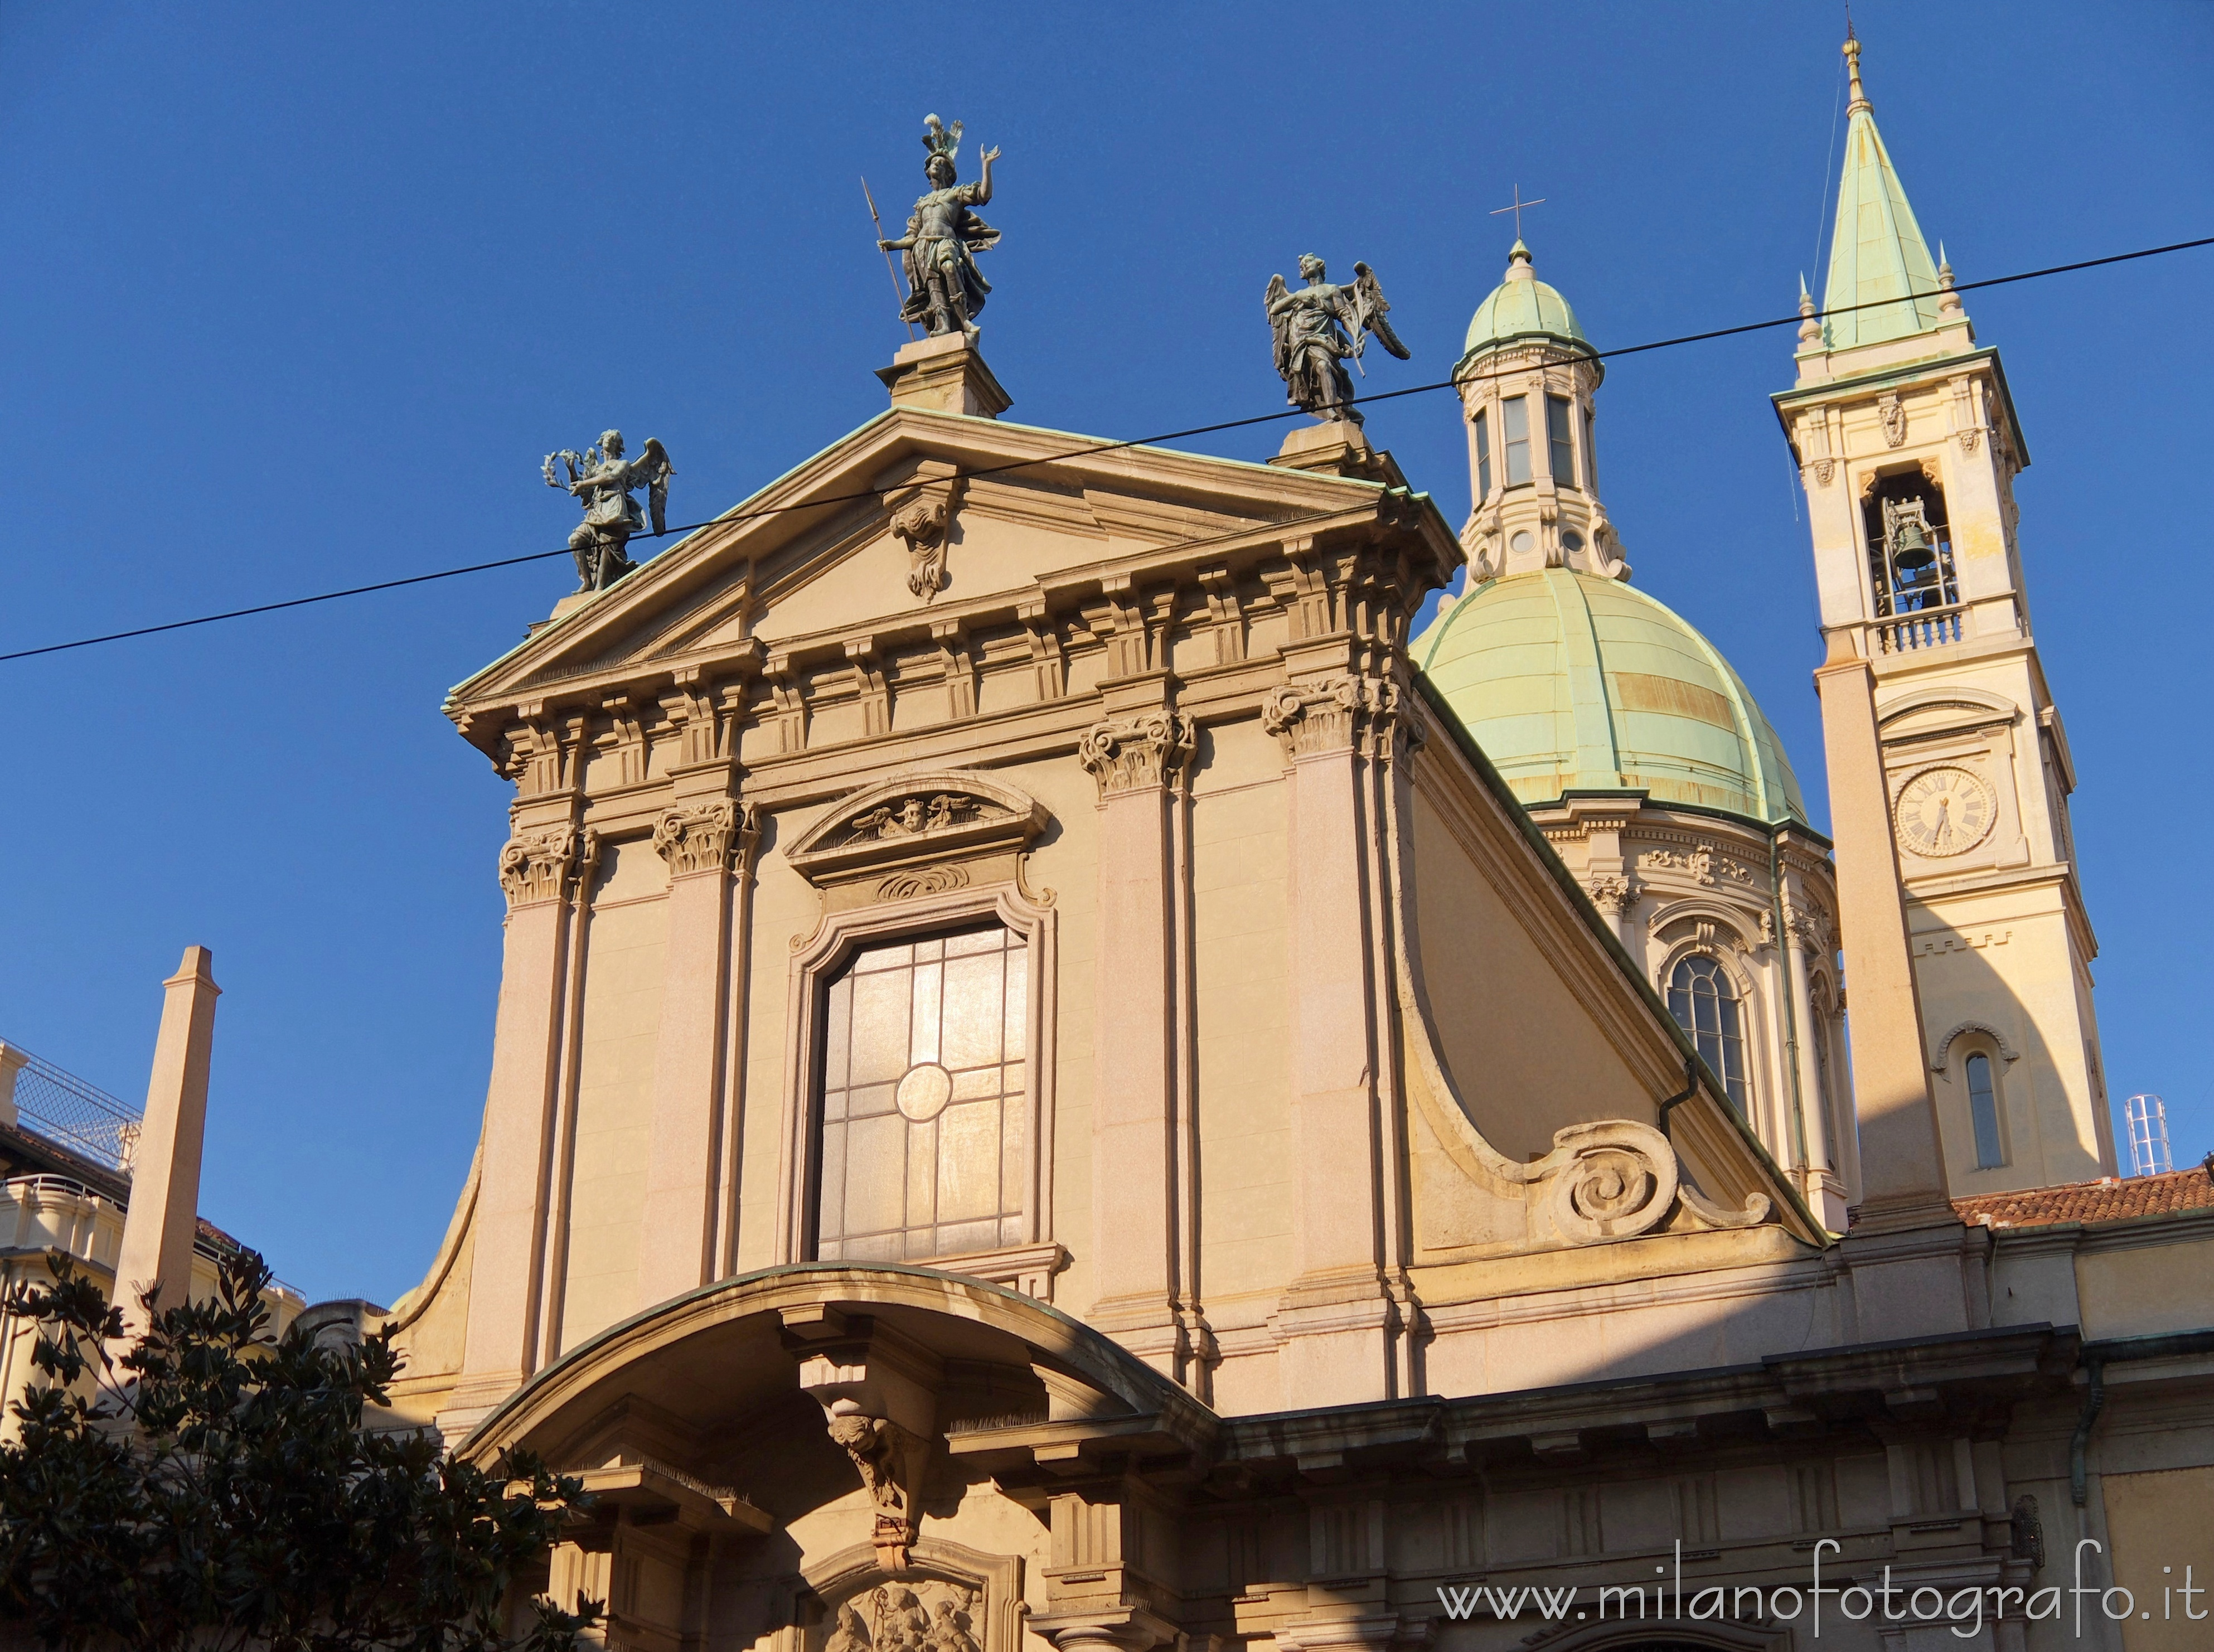 Milan (Italy): Upper part of the facade of the Church of San Giorgio at the Palace - Milan (Italy)